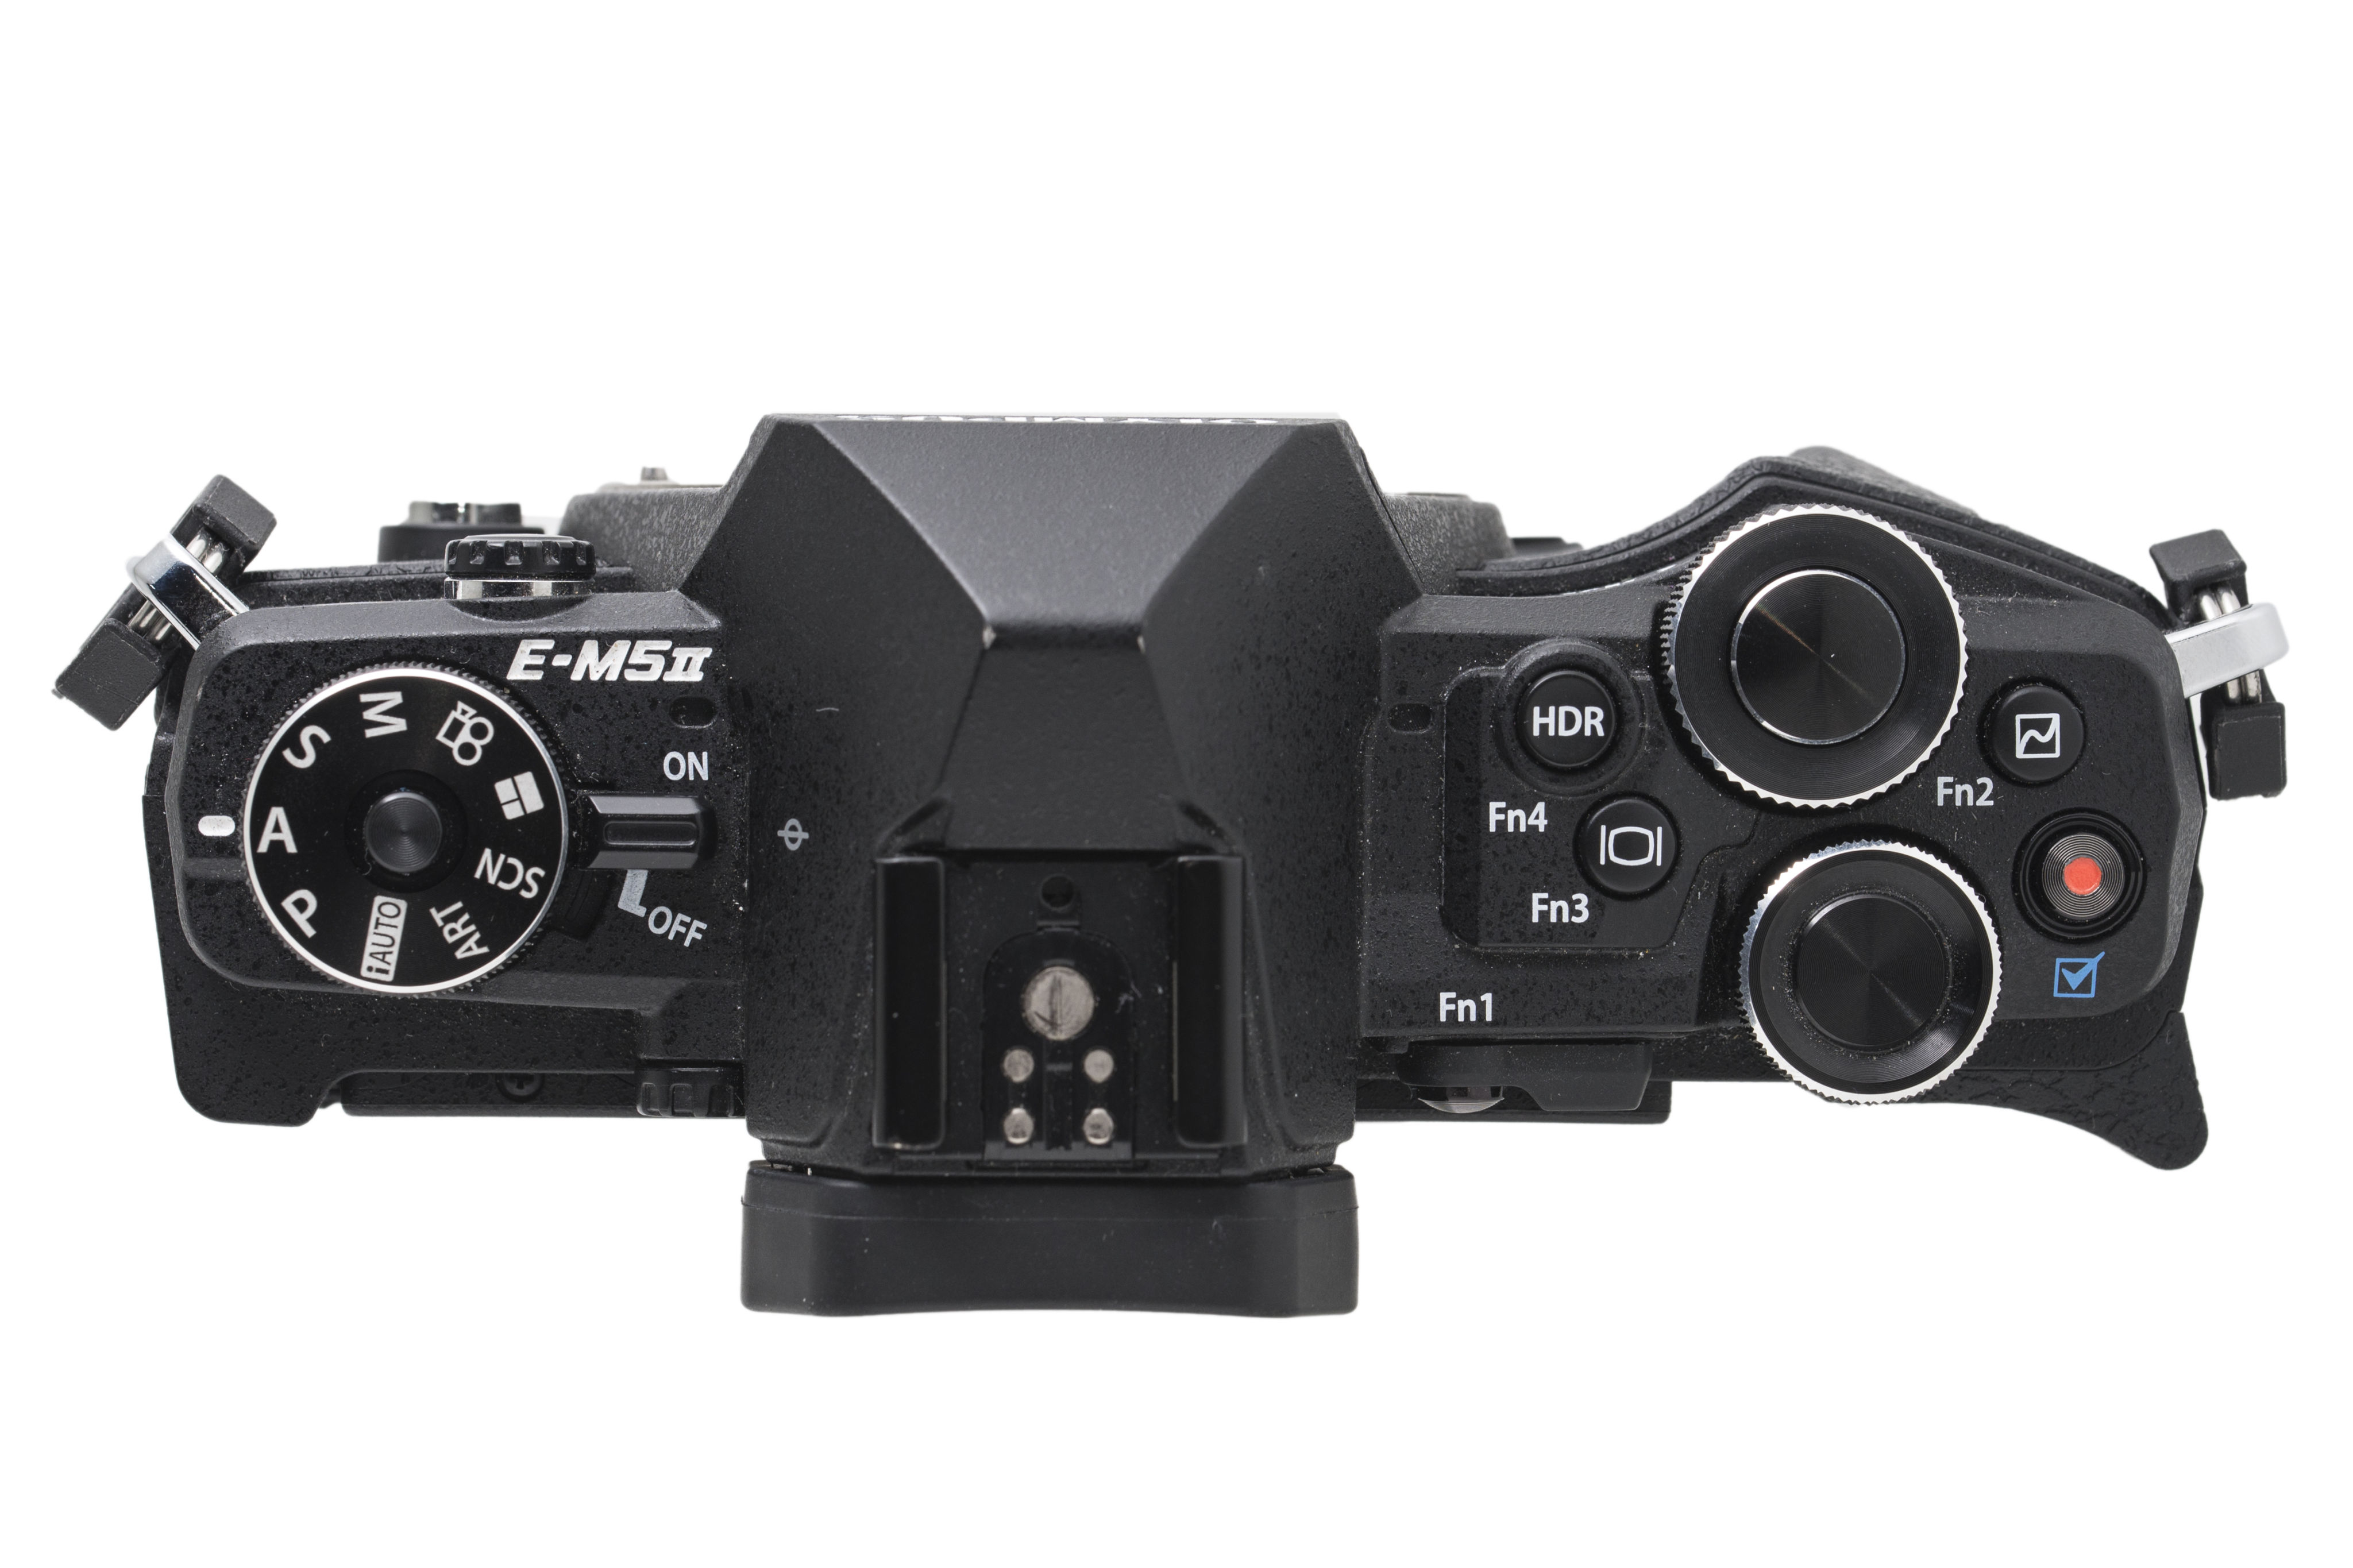 Button overload: the OM-D E-M5 Mark II has a lot of customisable function buttons peppered around its body